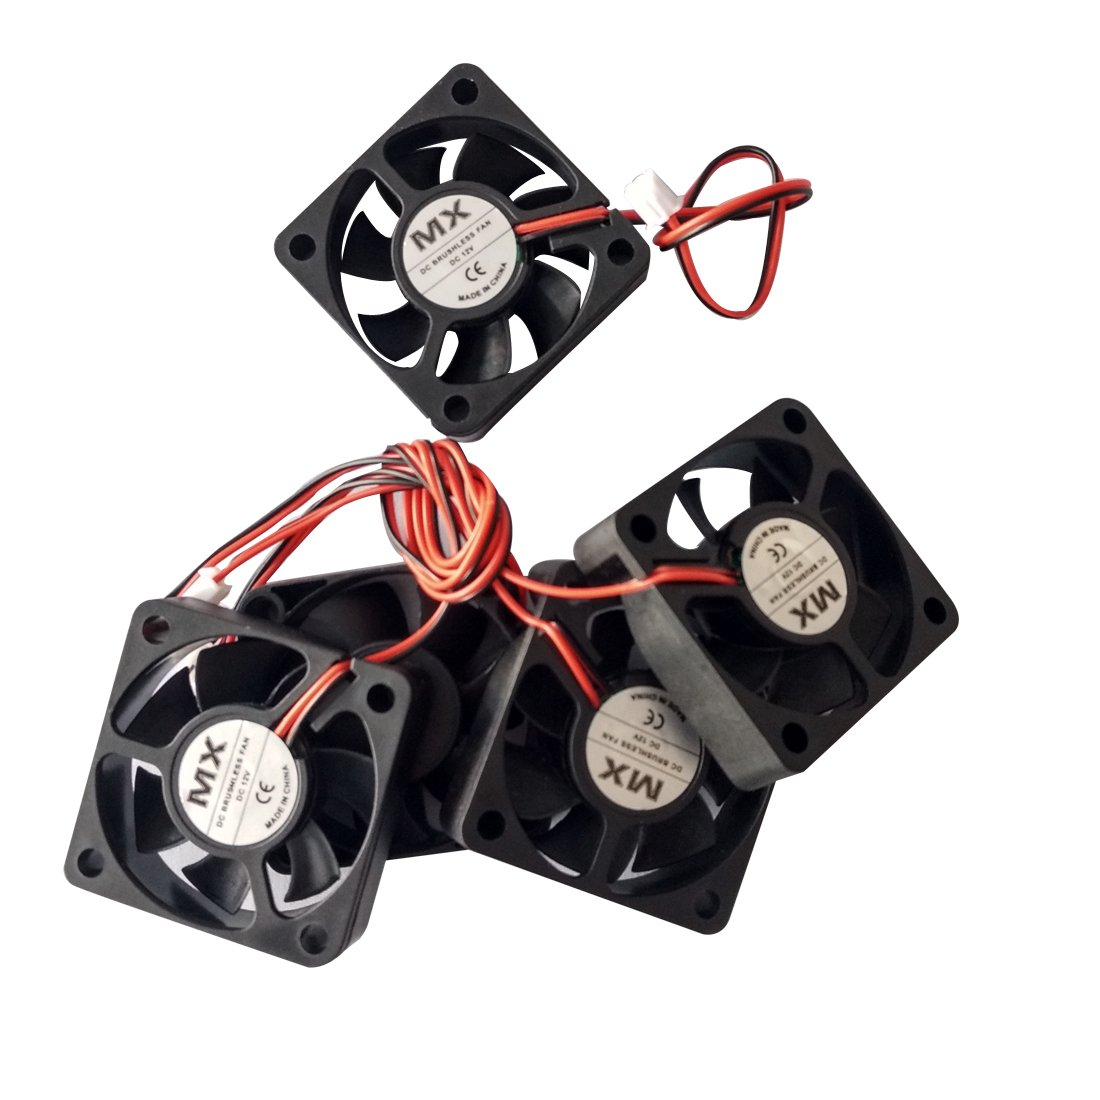 Copapa 5Pcs Cooling Fan 4010 40x40x10mm 2-Wire for PC Case Cooler (12V)